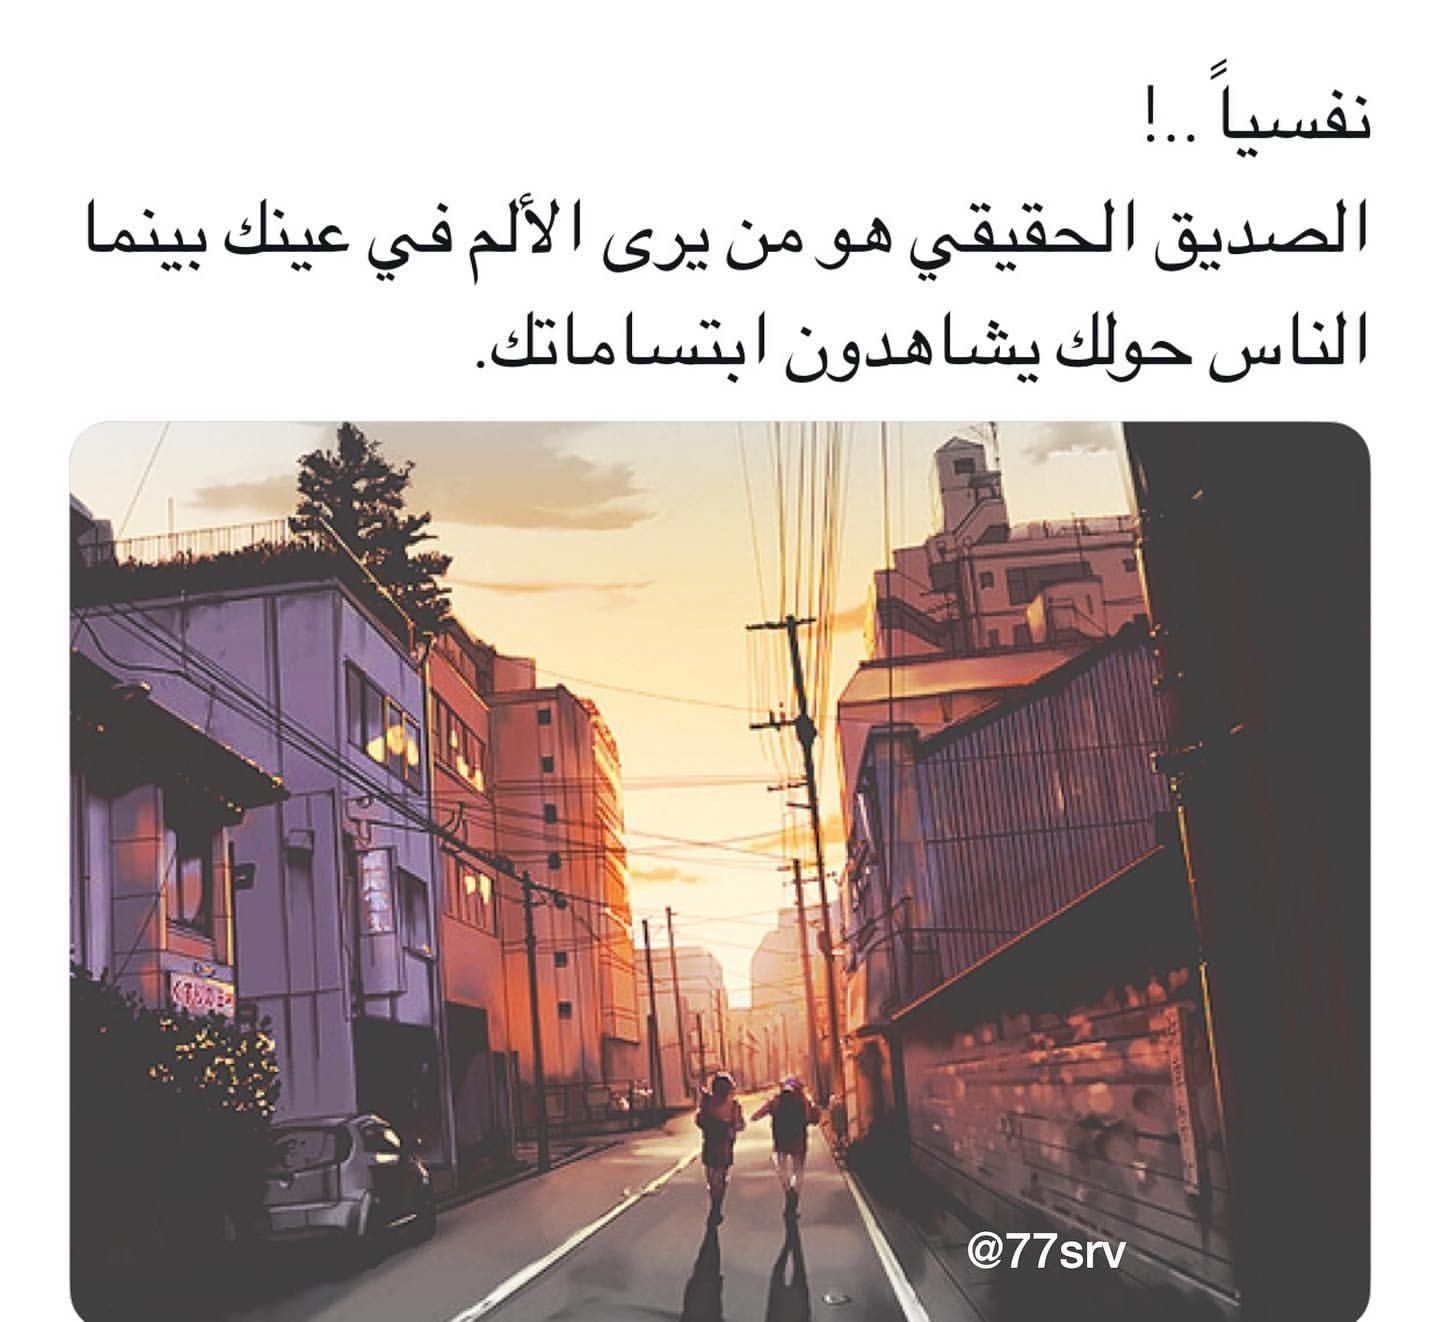 Pin By Alaa Tameem On كلام حكيم Arabic Quotes Best Friends Qoutes